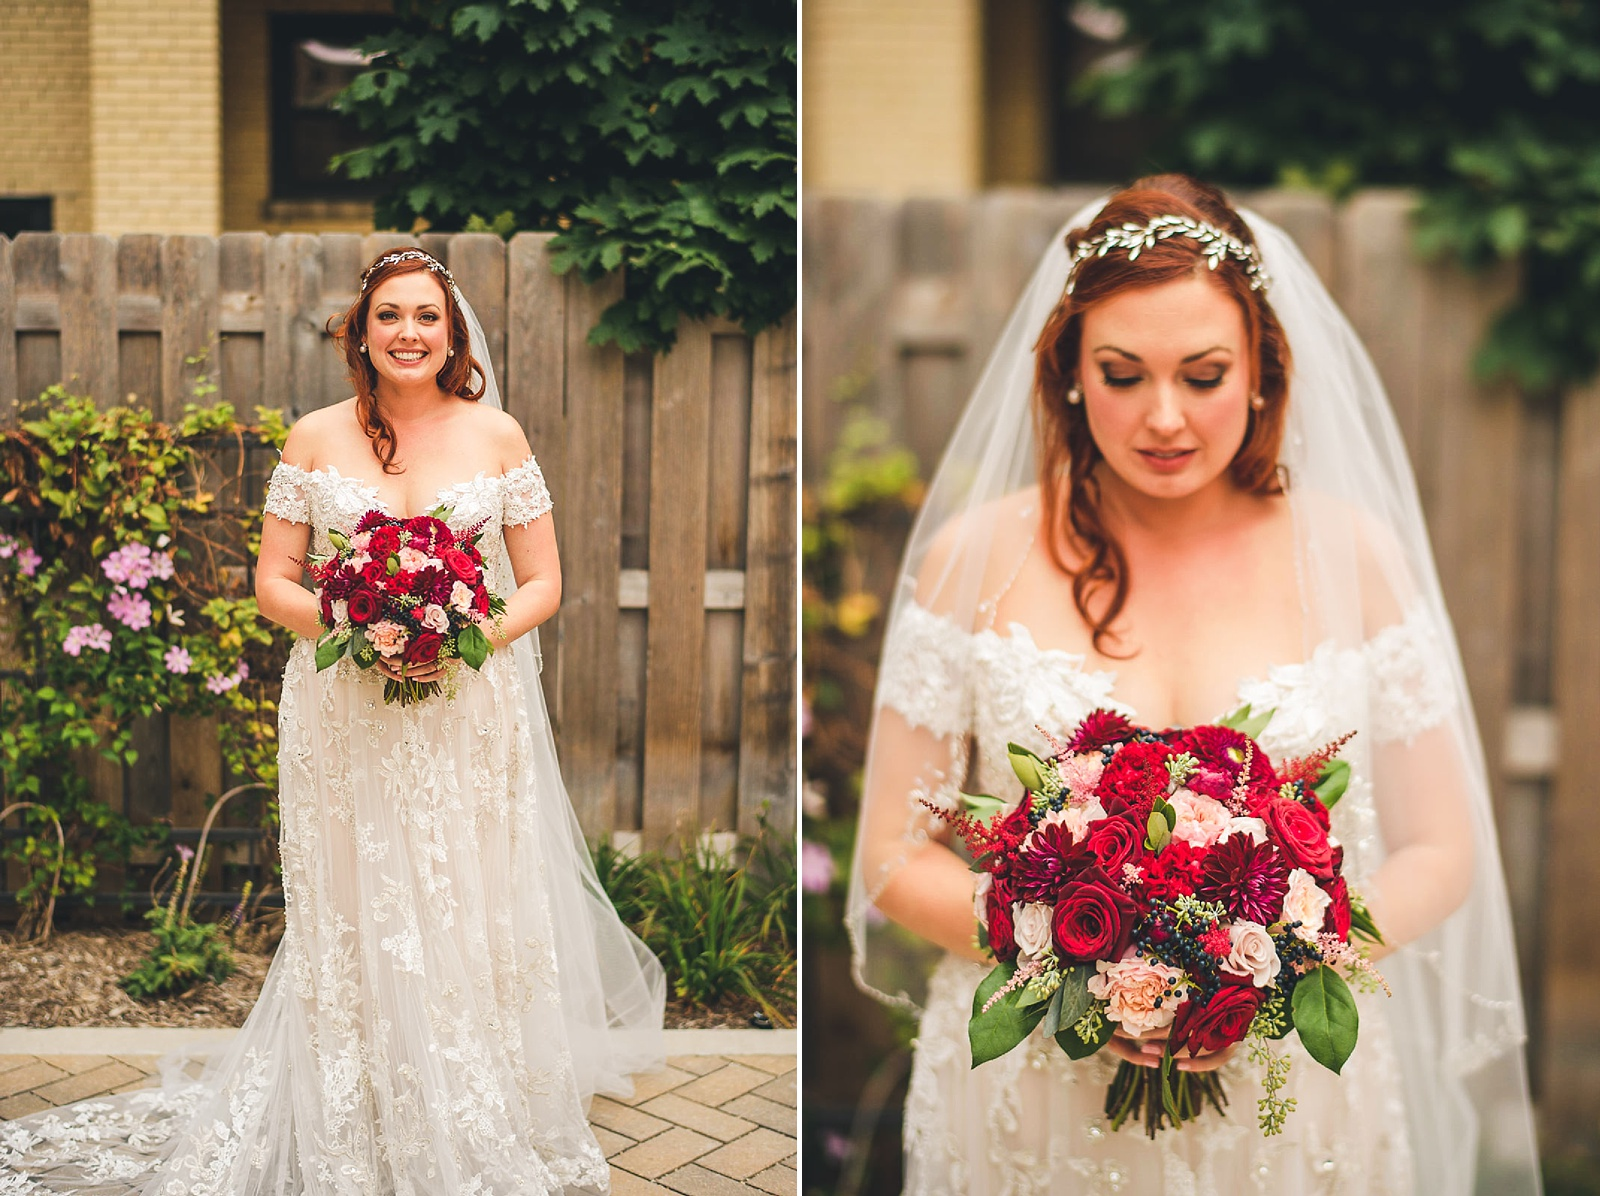 42 bride details - Hilton Chicago Wedding Photographer // Sarah + Aaron